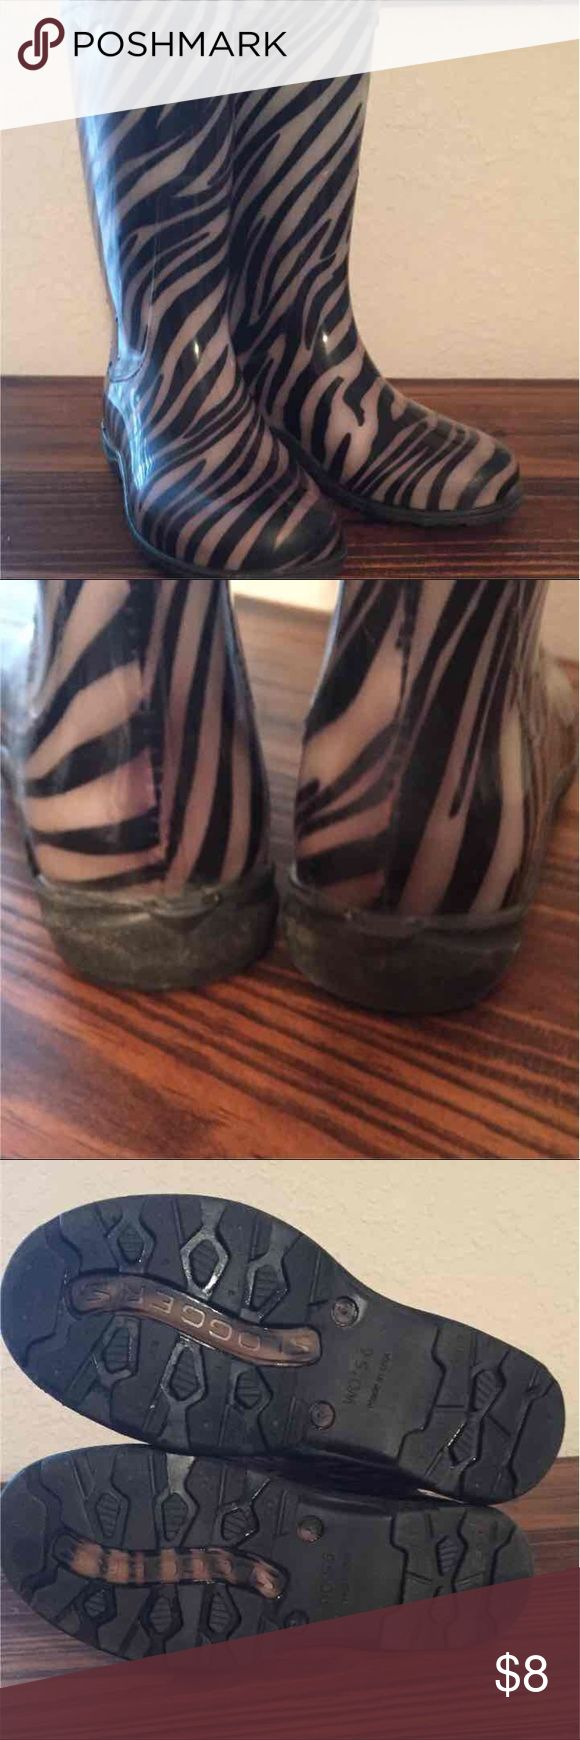 Size 6 Zebra Slogger Rain Boots These boots are super comfortable!! Last picture shows wear on the insoles. sloggers Shoes Winter & Rain Boots